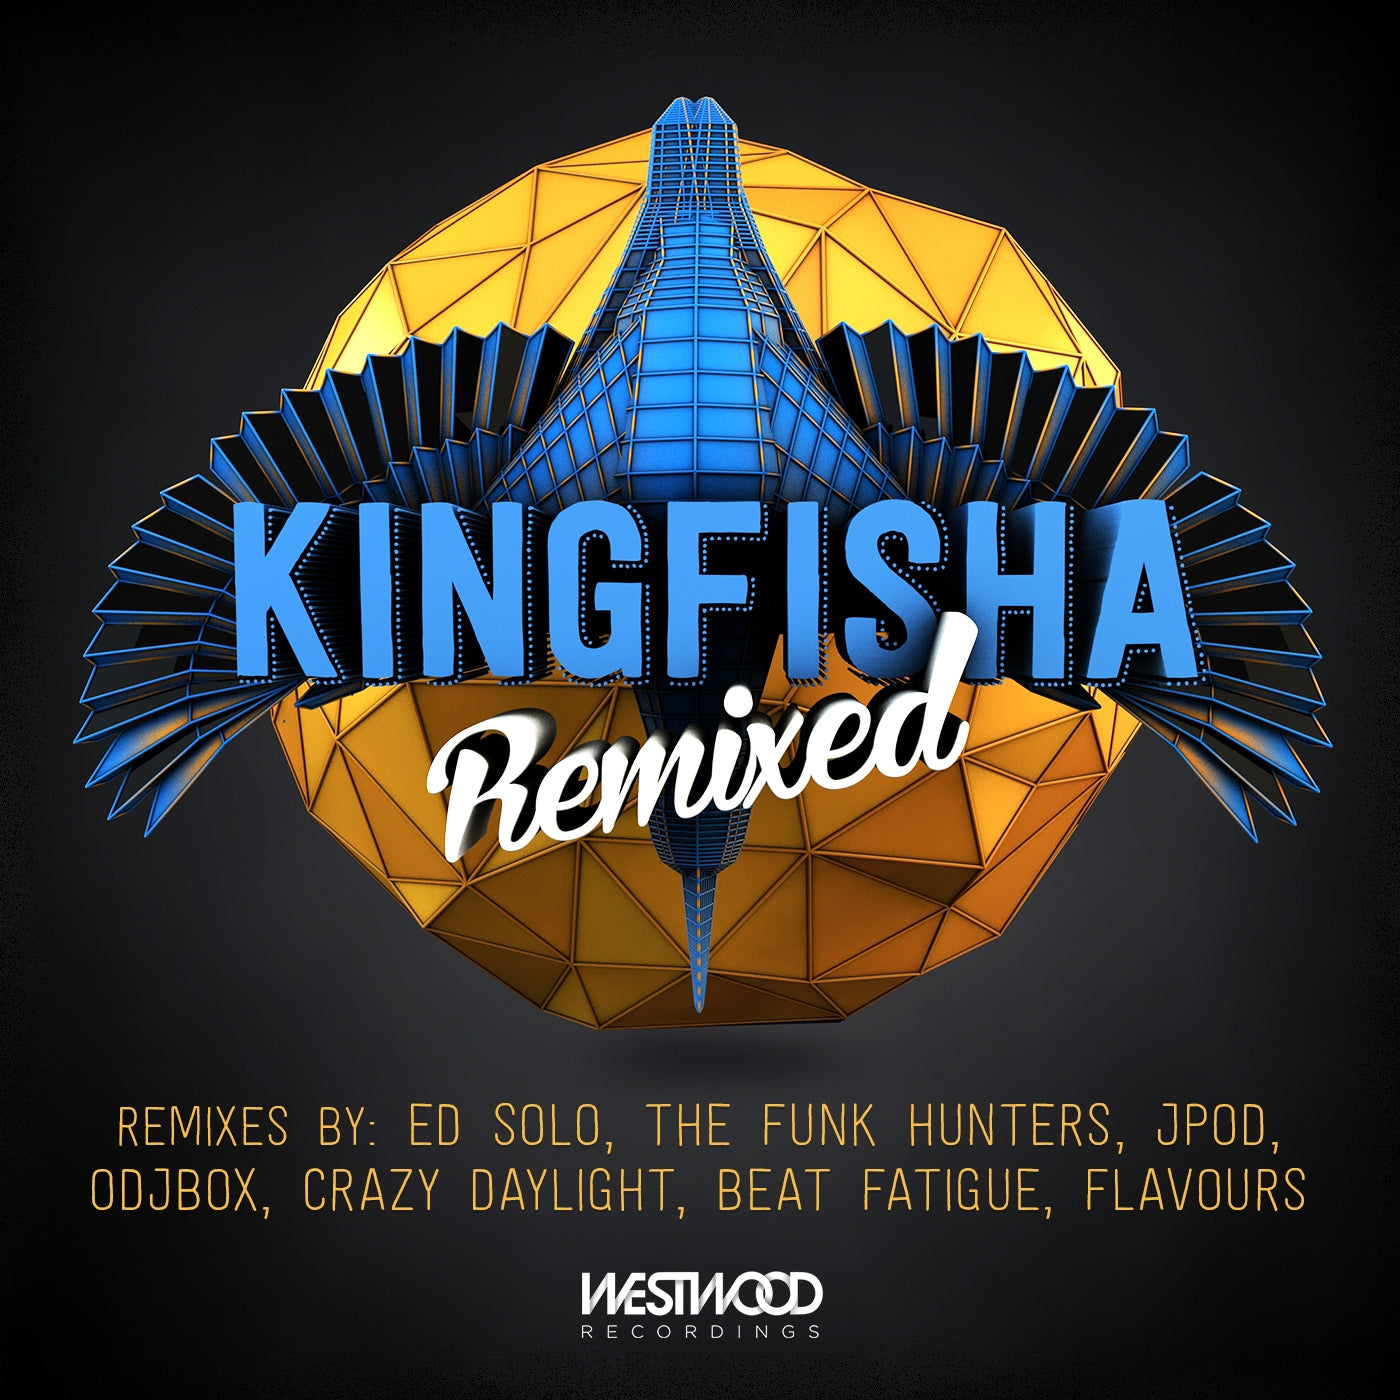 Kingfisha - Kingfisha Remixed